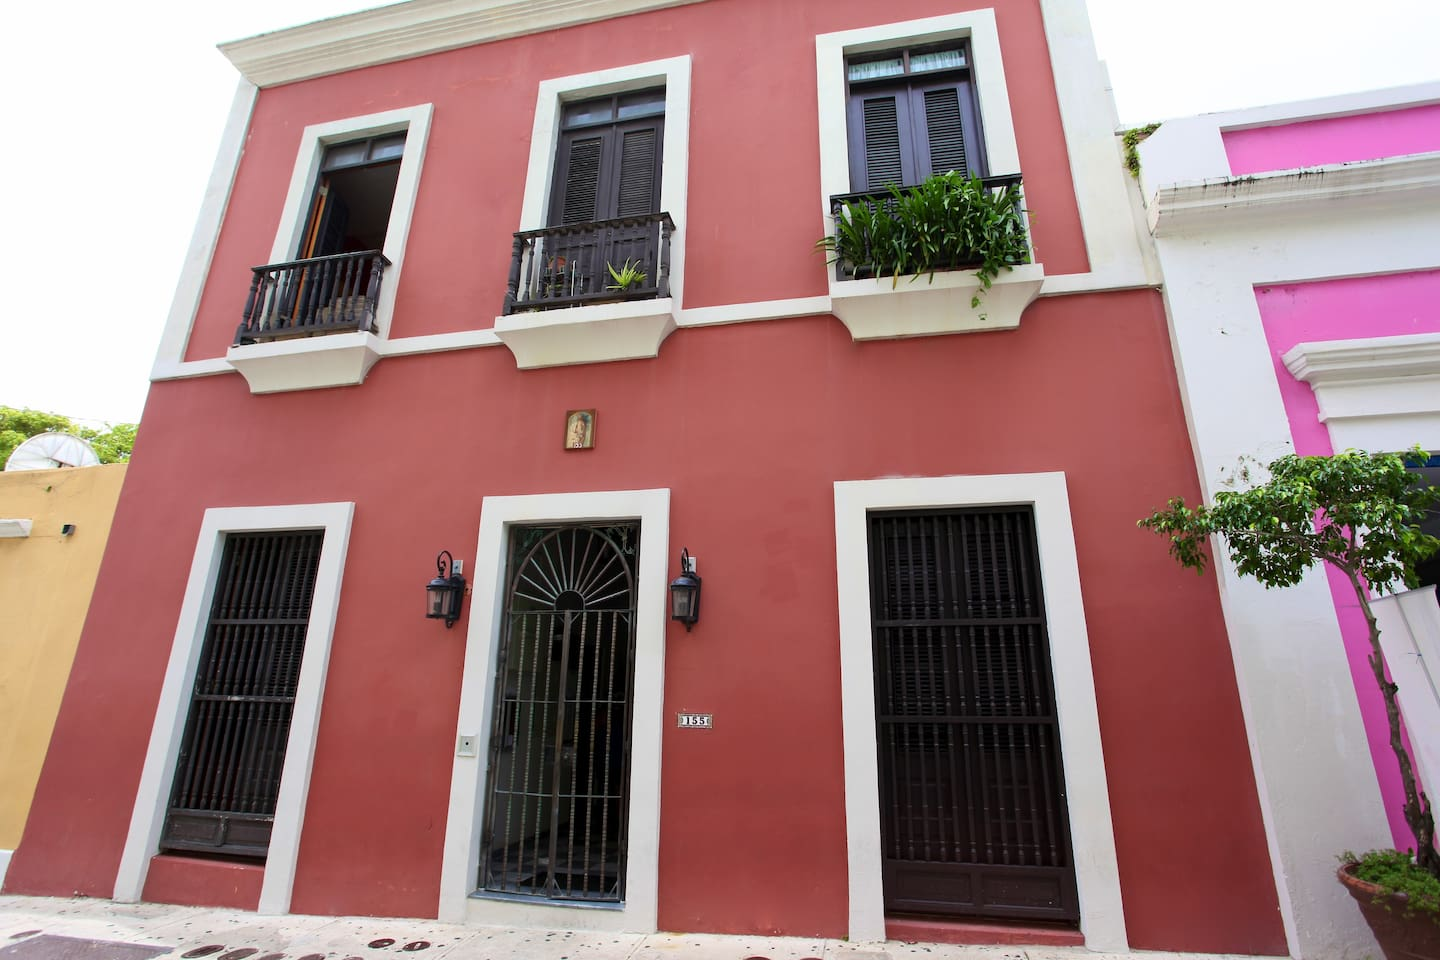 Located right in the heart of Calle San Sebastian in Old San Juan.